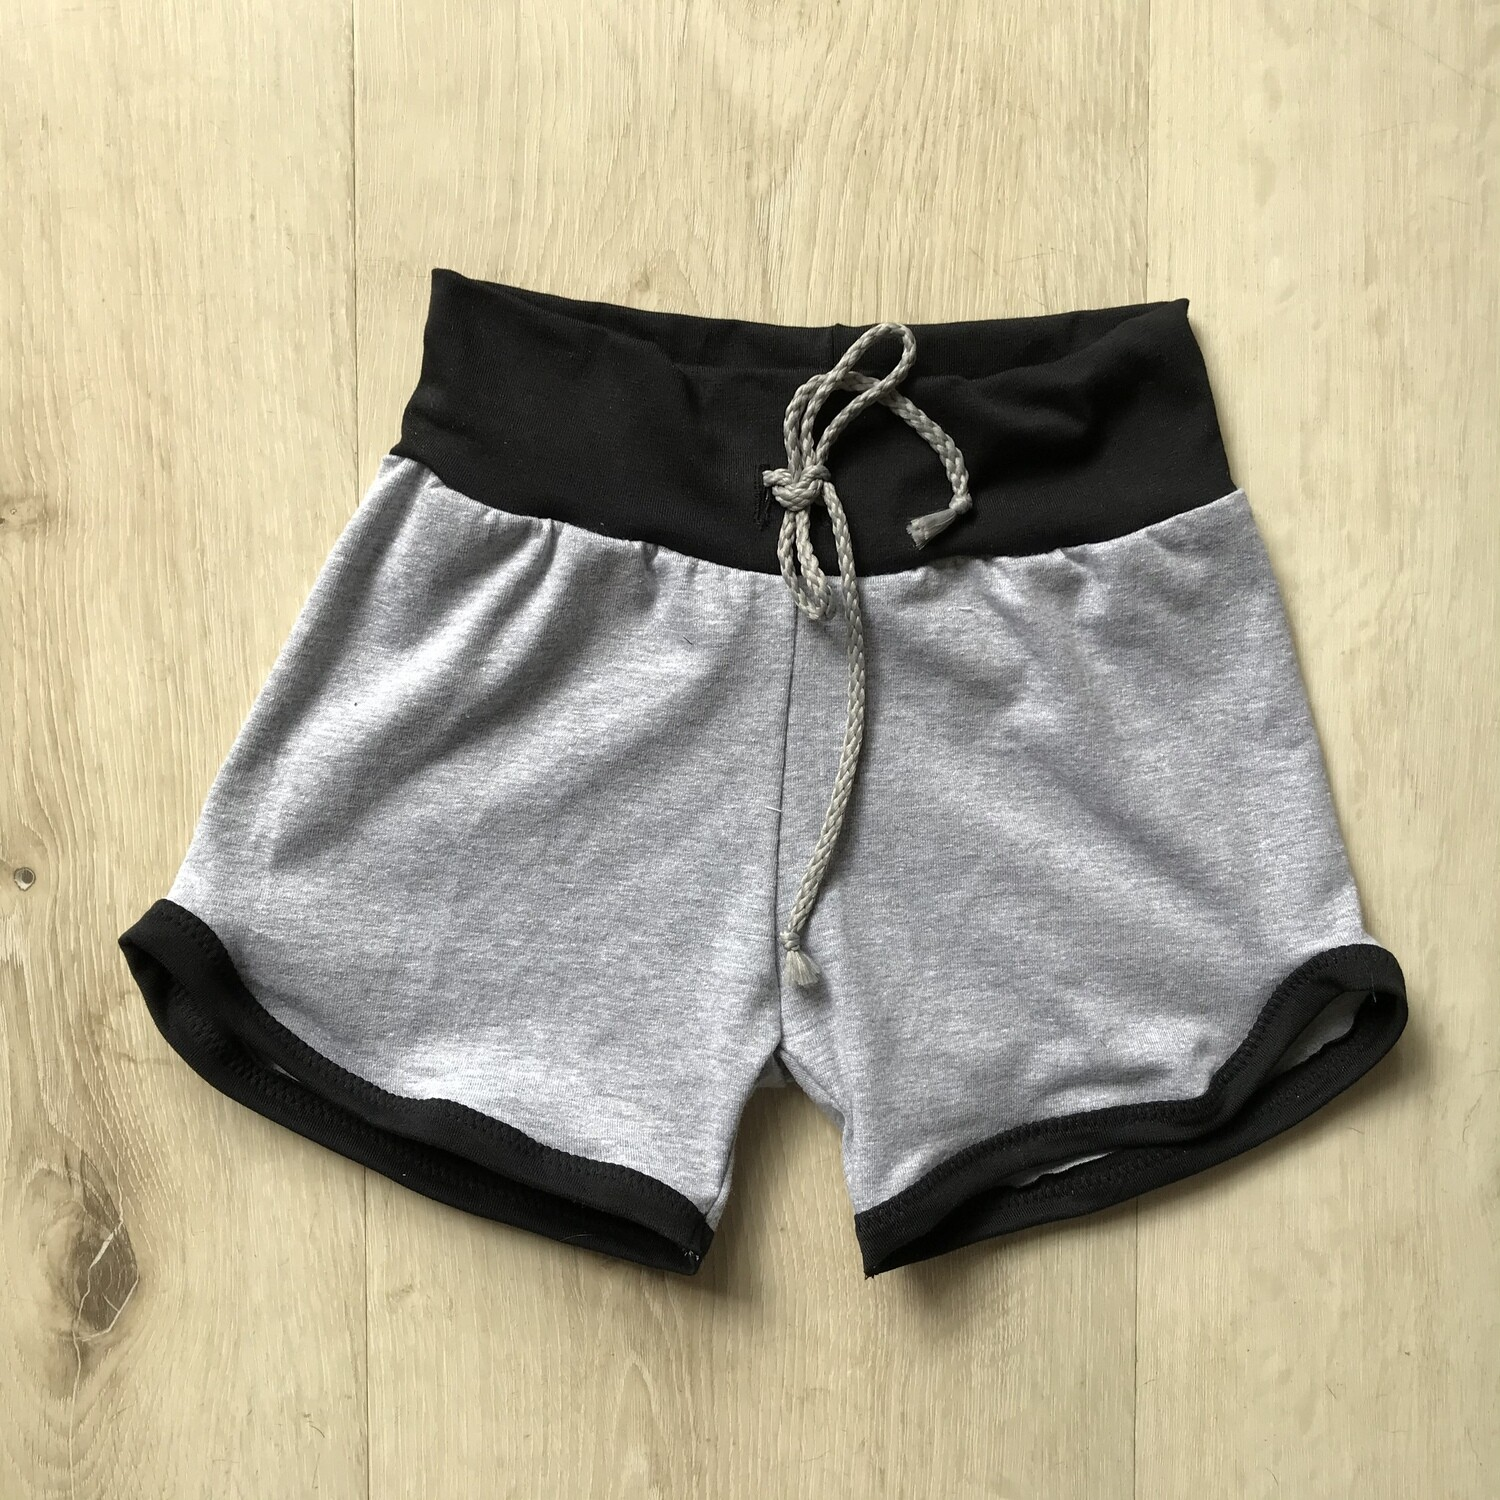 Grey with black Retro shorts